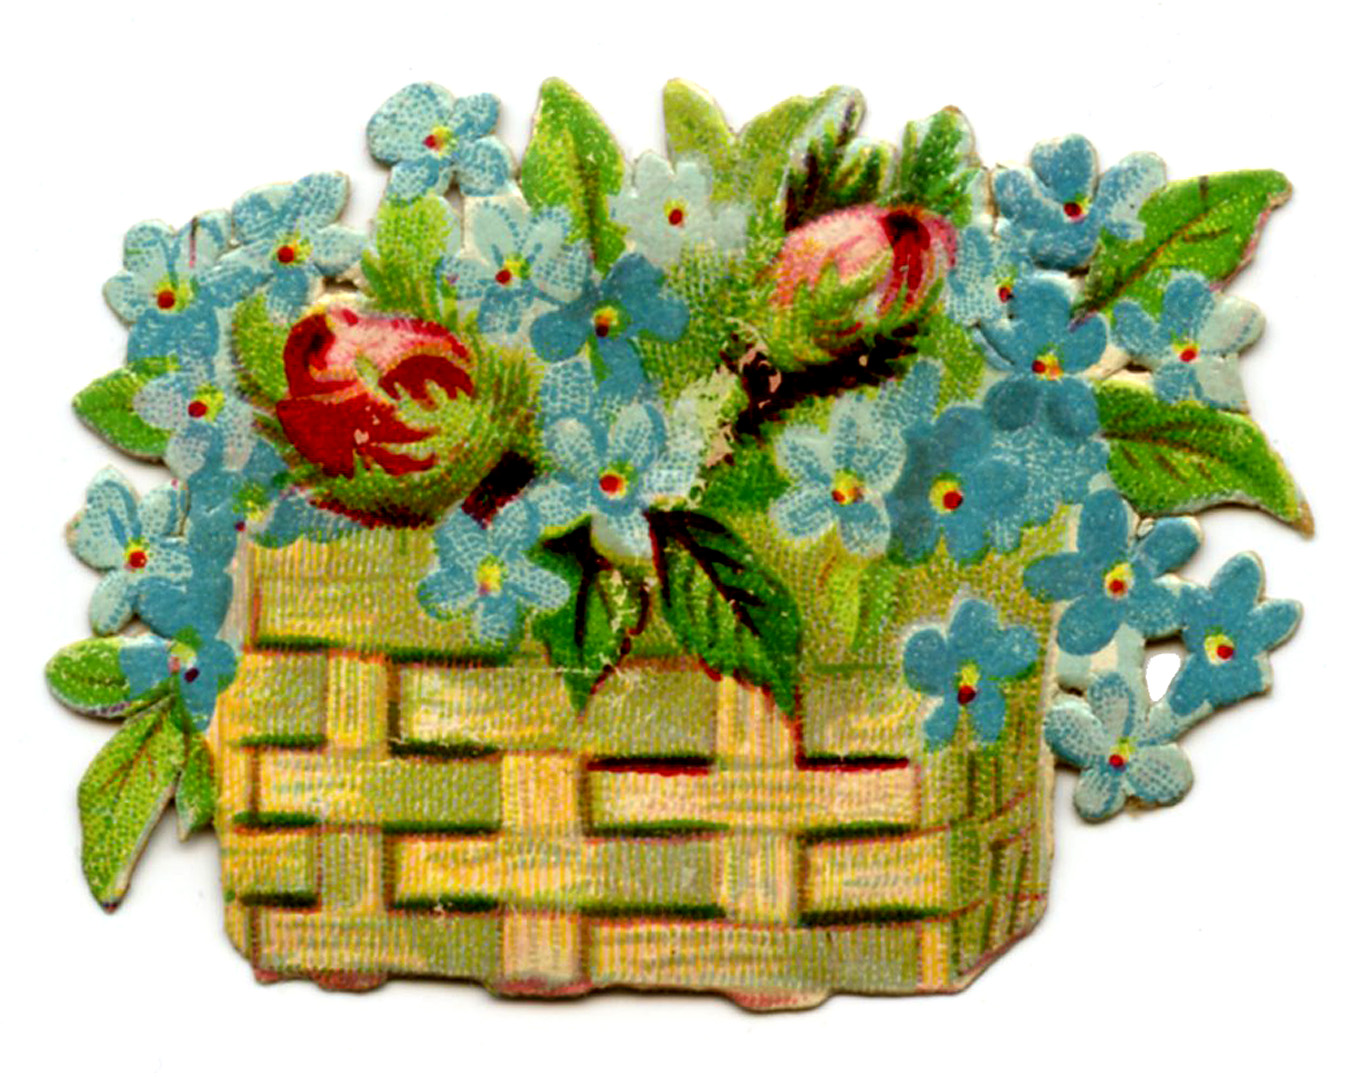 Images Of Flower Baskets : Antique pictures flower baskets doves the graphics fairy